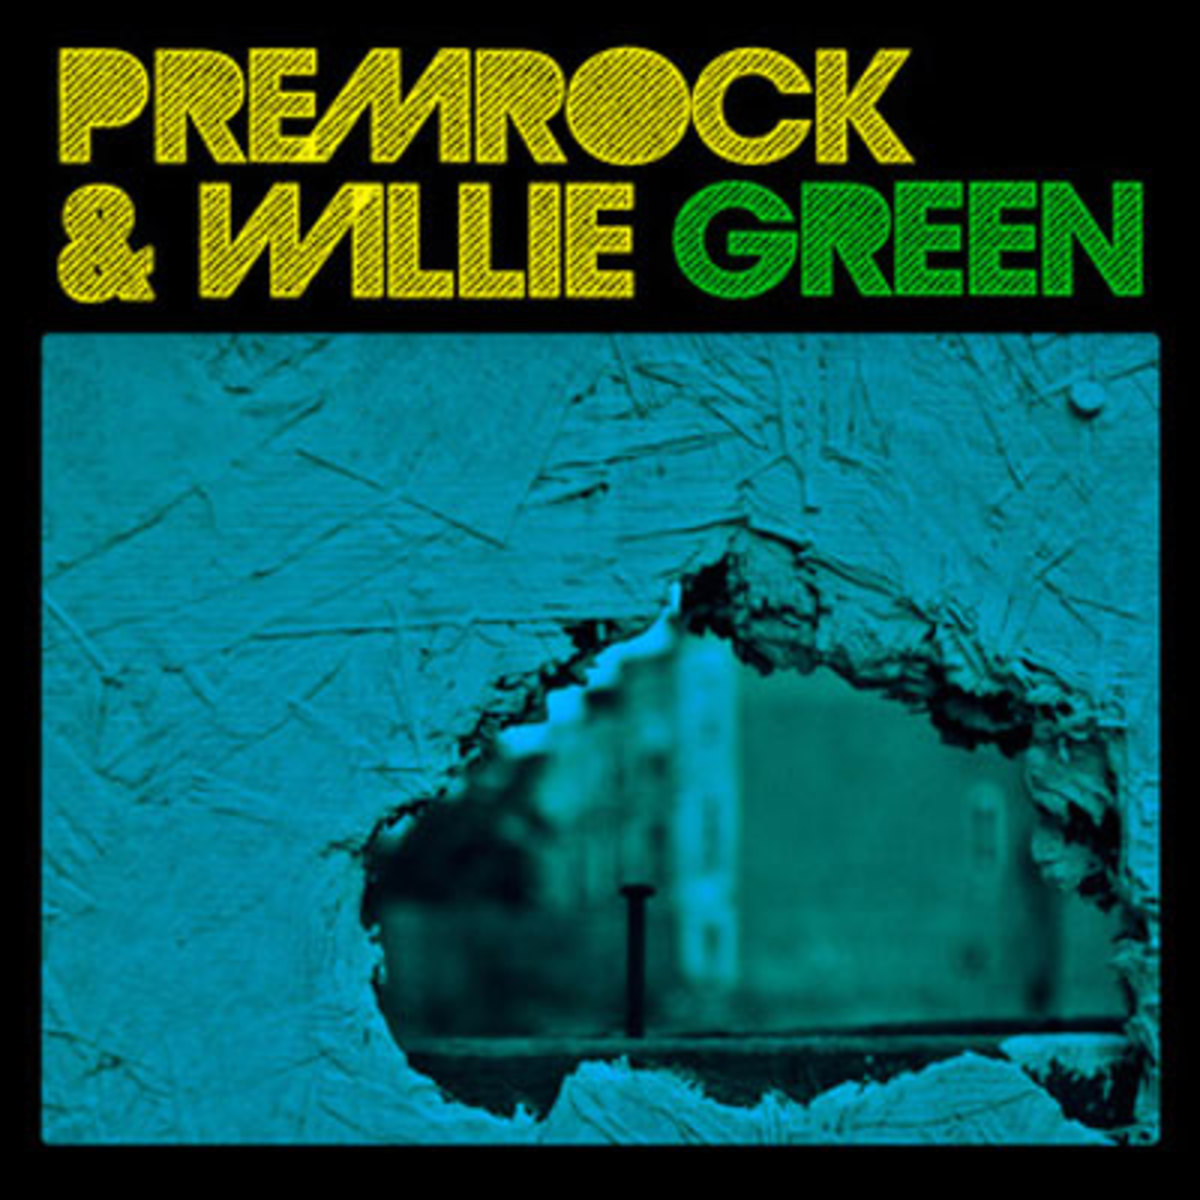 premrock-williegreen.jpg